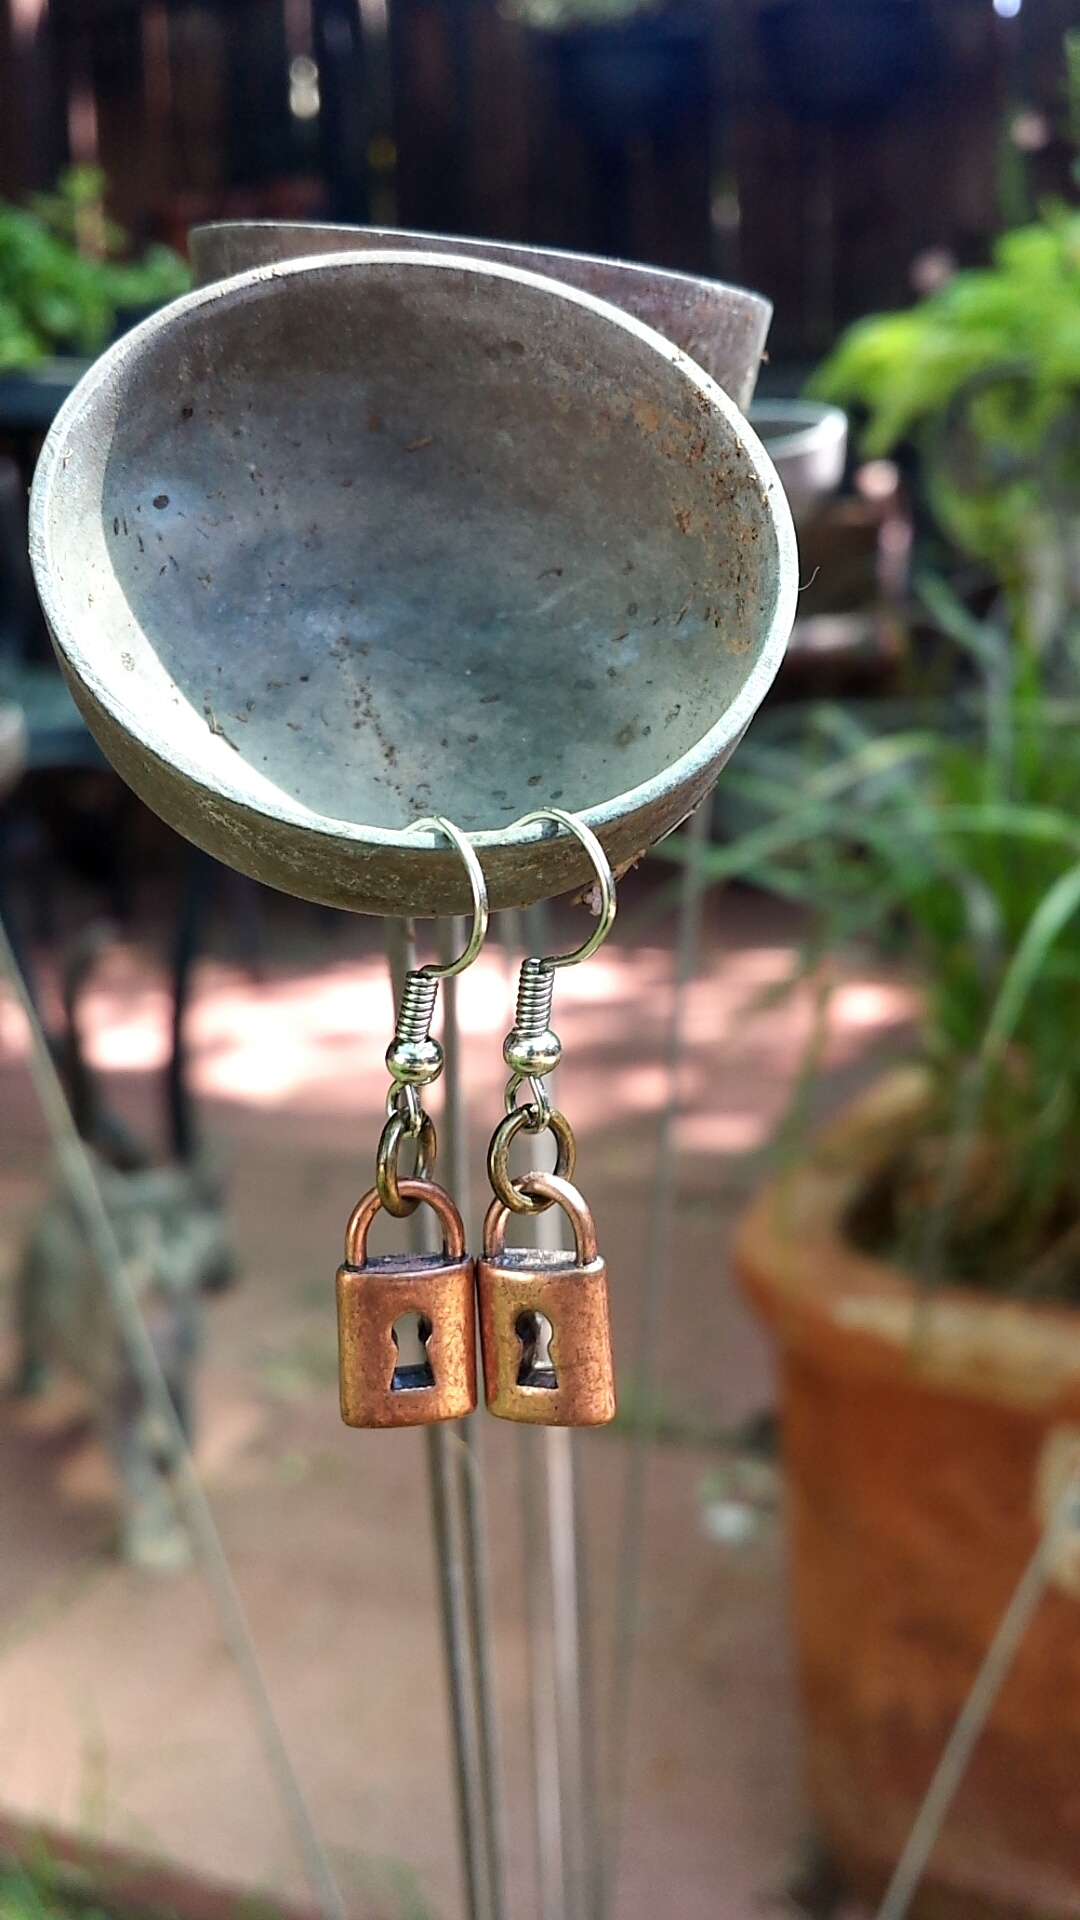 Image of 3rd Place earrings